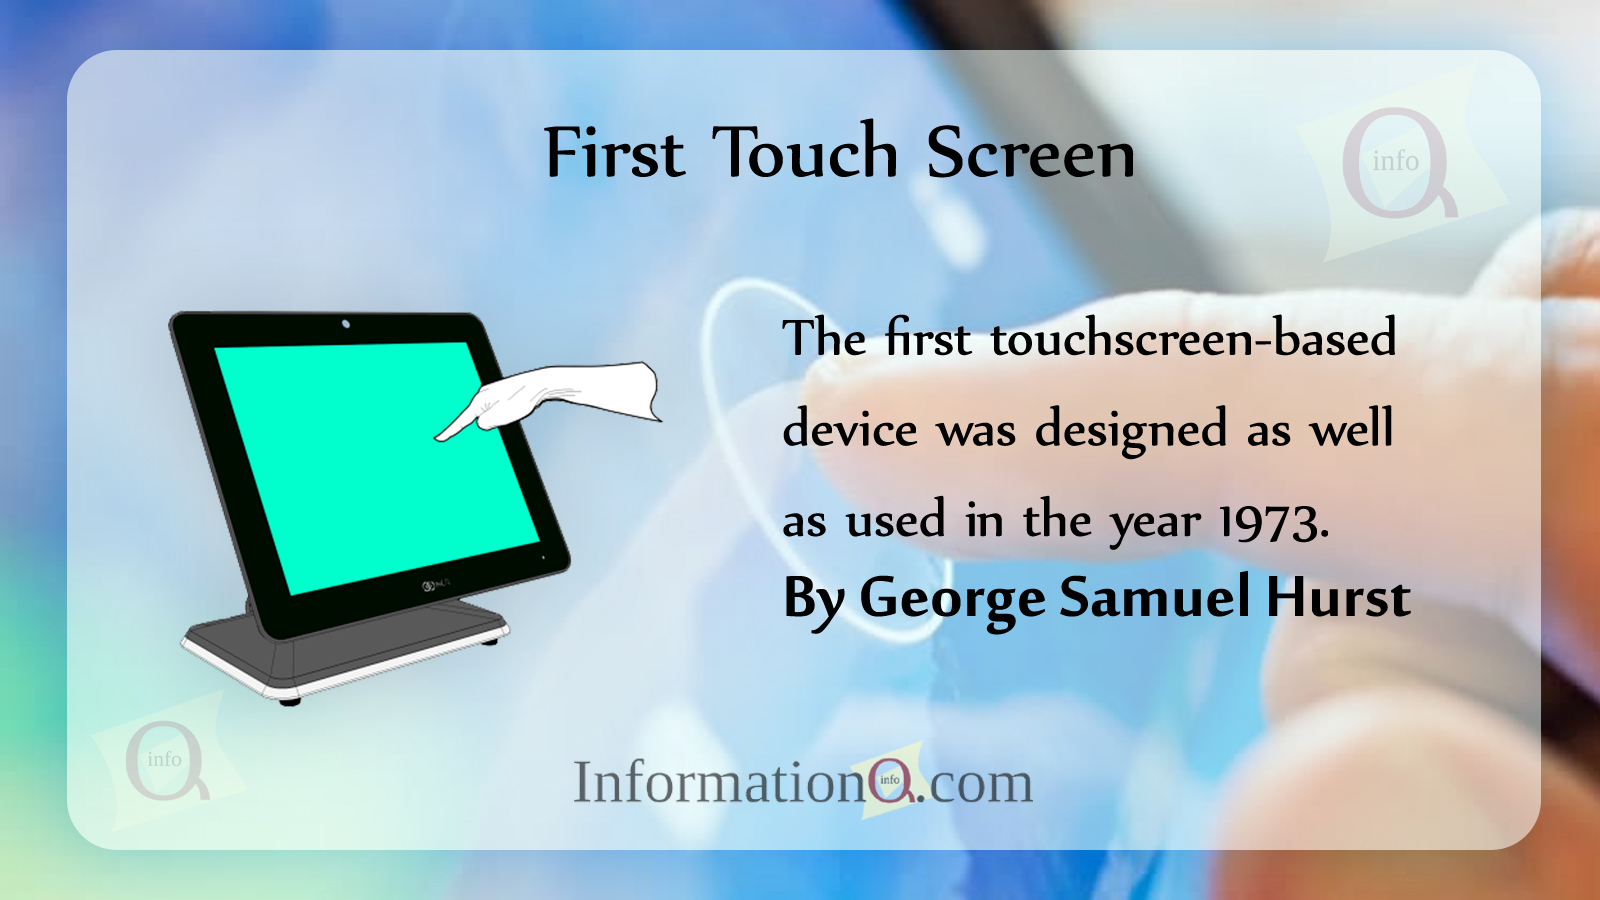 First Touch Screen